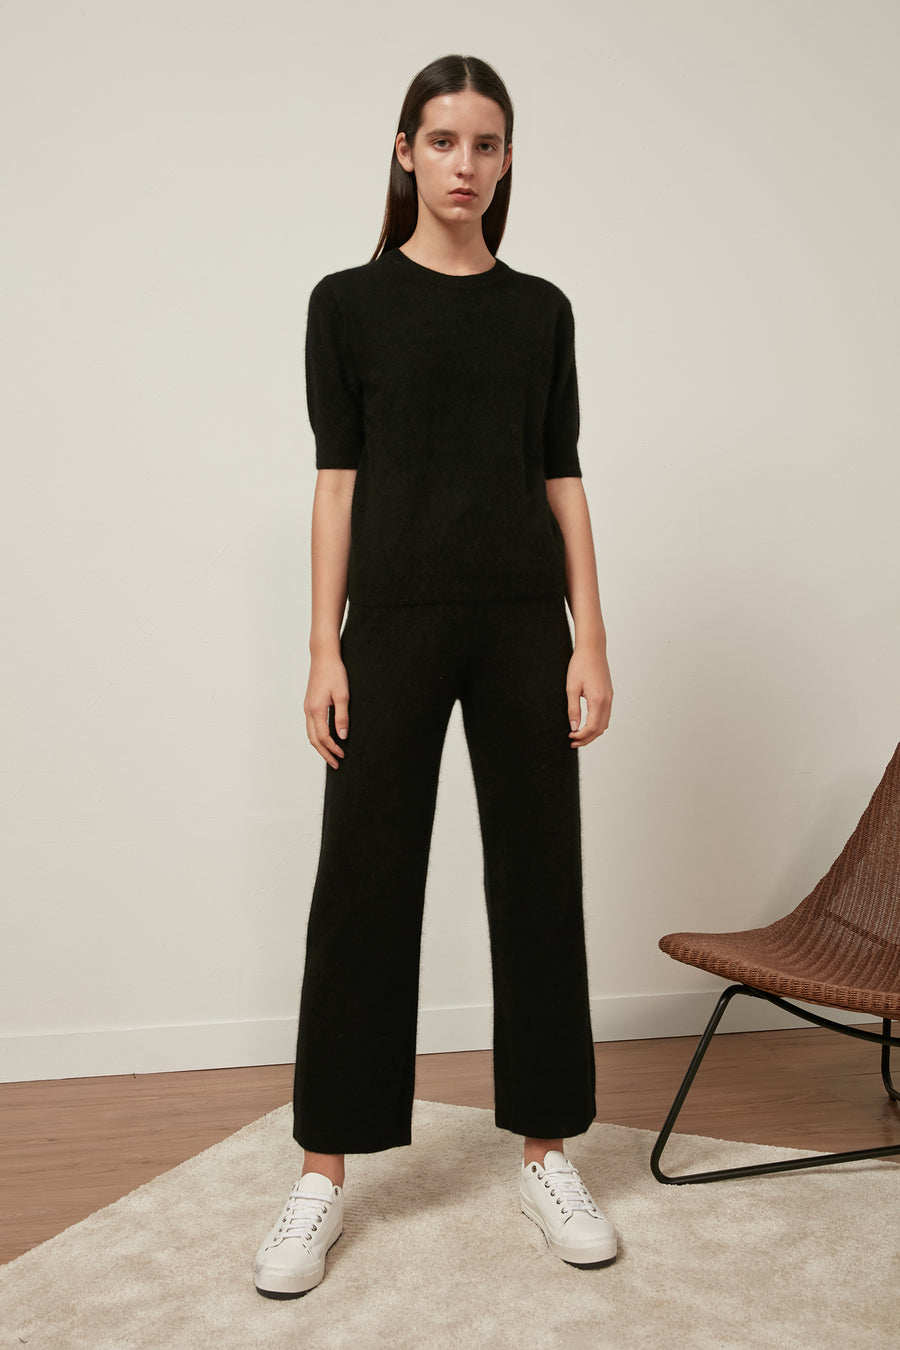 Raccoon fox and wool-blend trousers - Zelle Studio